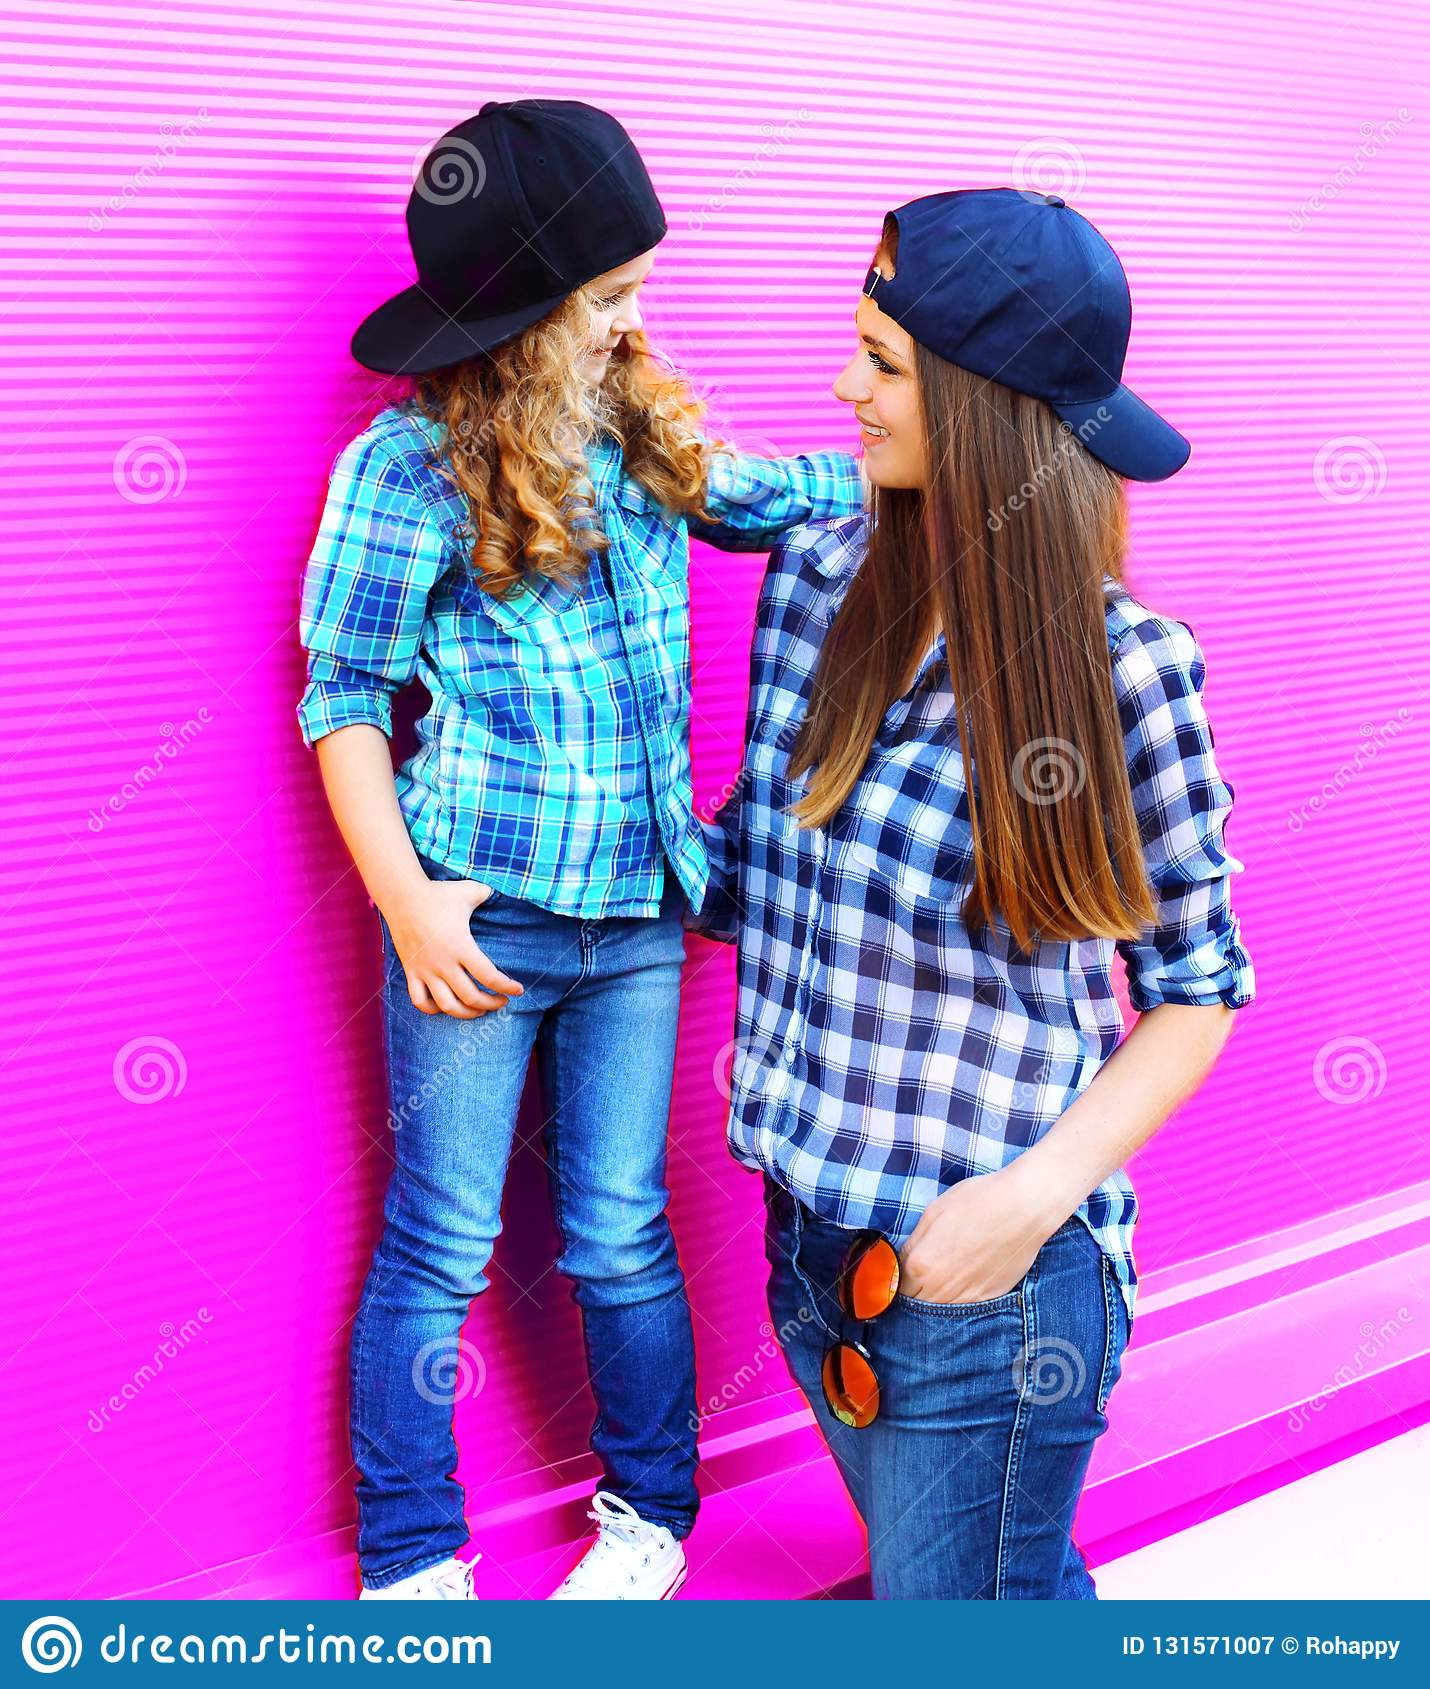 Fashion mother looking at child little girl in checkered shirts and baseball caps in city on colorful pink wall